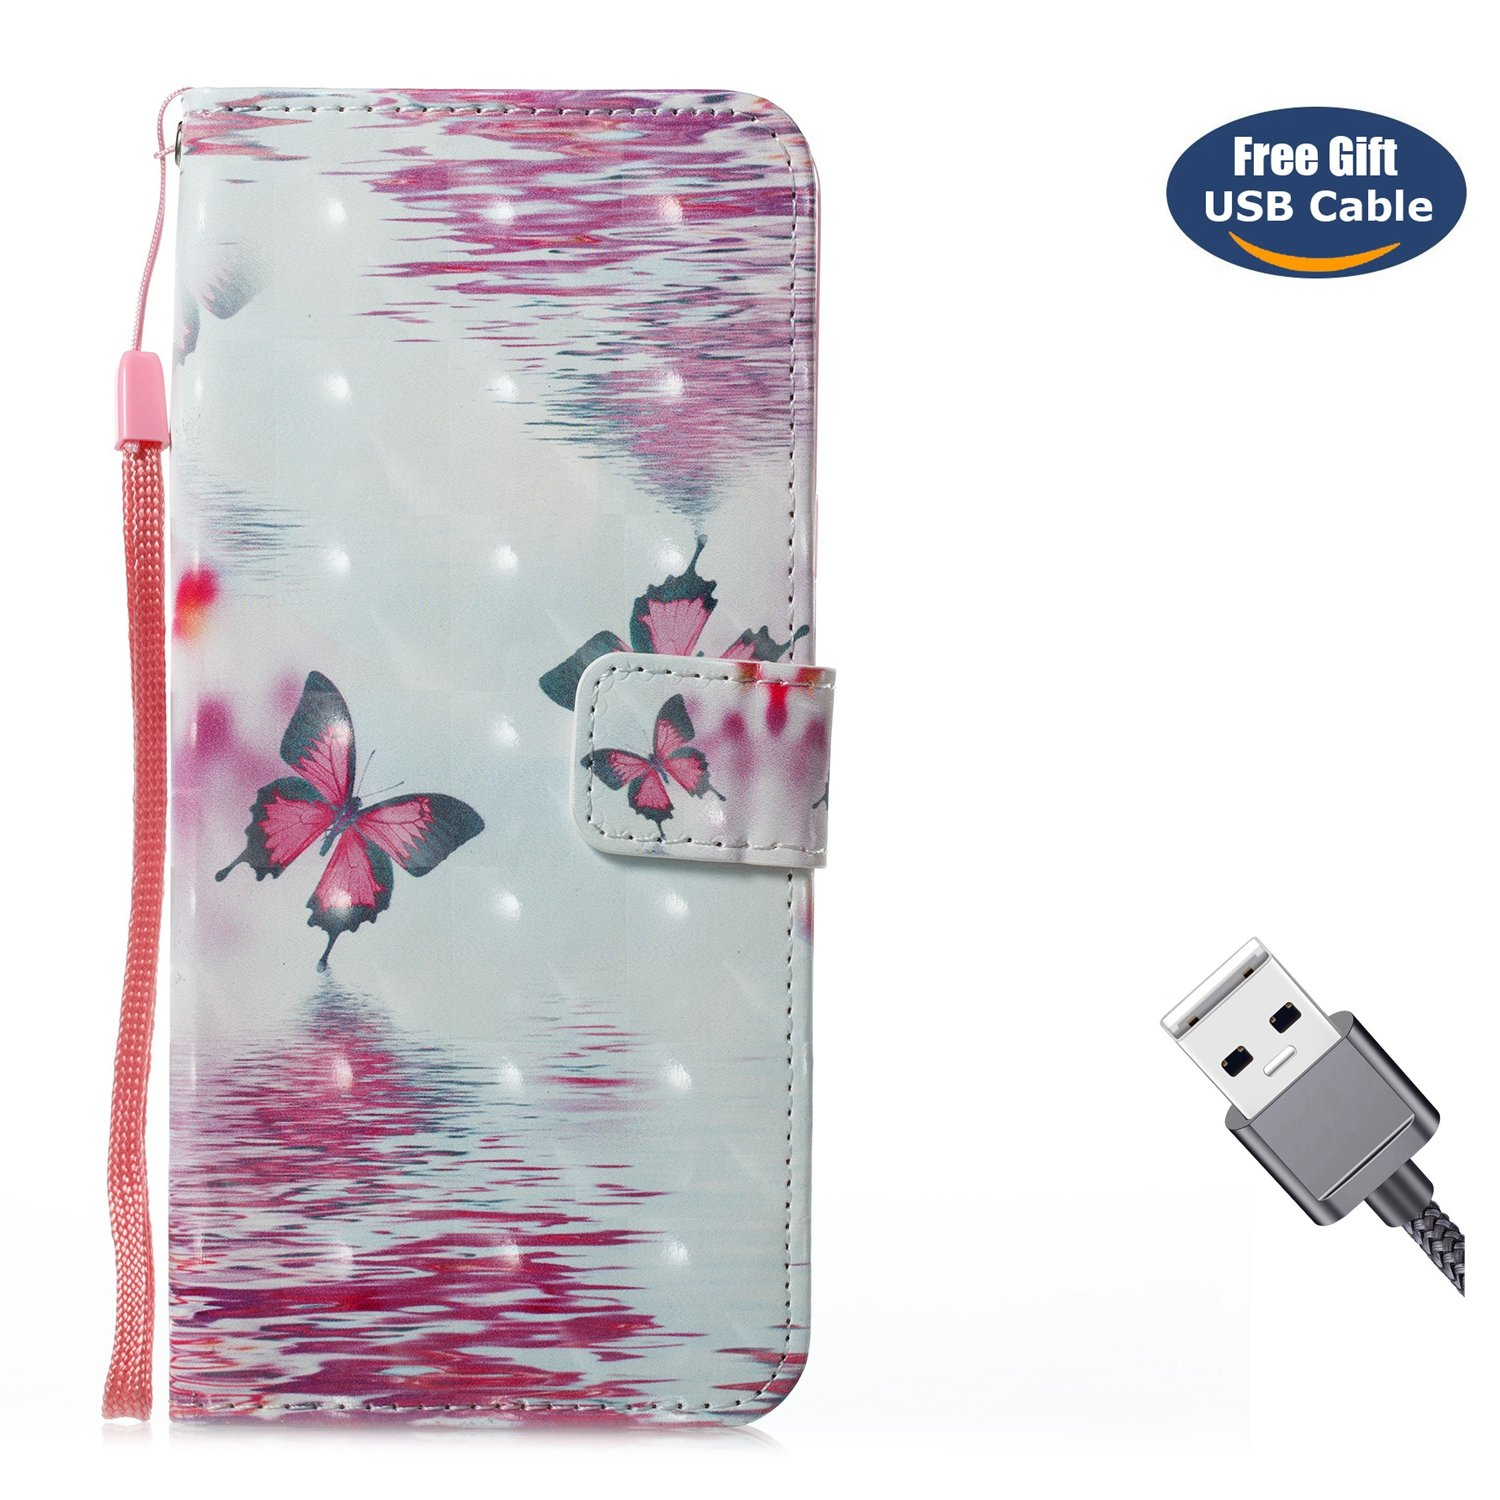 Galaxy Note 8 case, Galaxy Note 8 cover, Aireratze [Wallet Case] Premium Soft PU Leather Notebook 3D Surface Design Case with [Kickstand] Stand Function Card Holder and ID Slot Slim Flip Protective Skin Cover for Samsung Galaxy Note 8(Baby Bear)+ Free USB